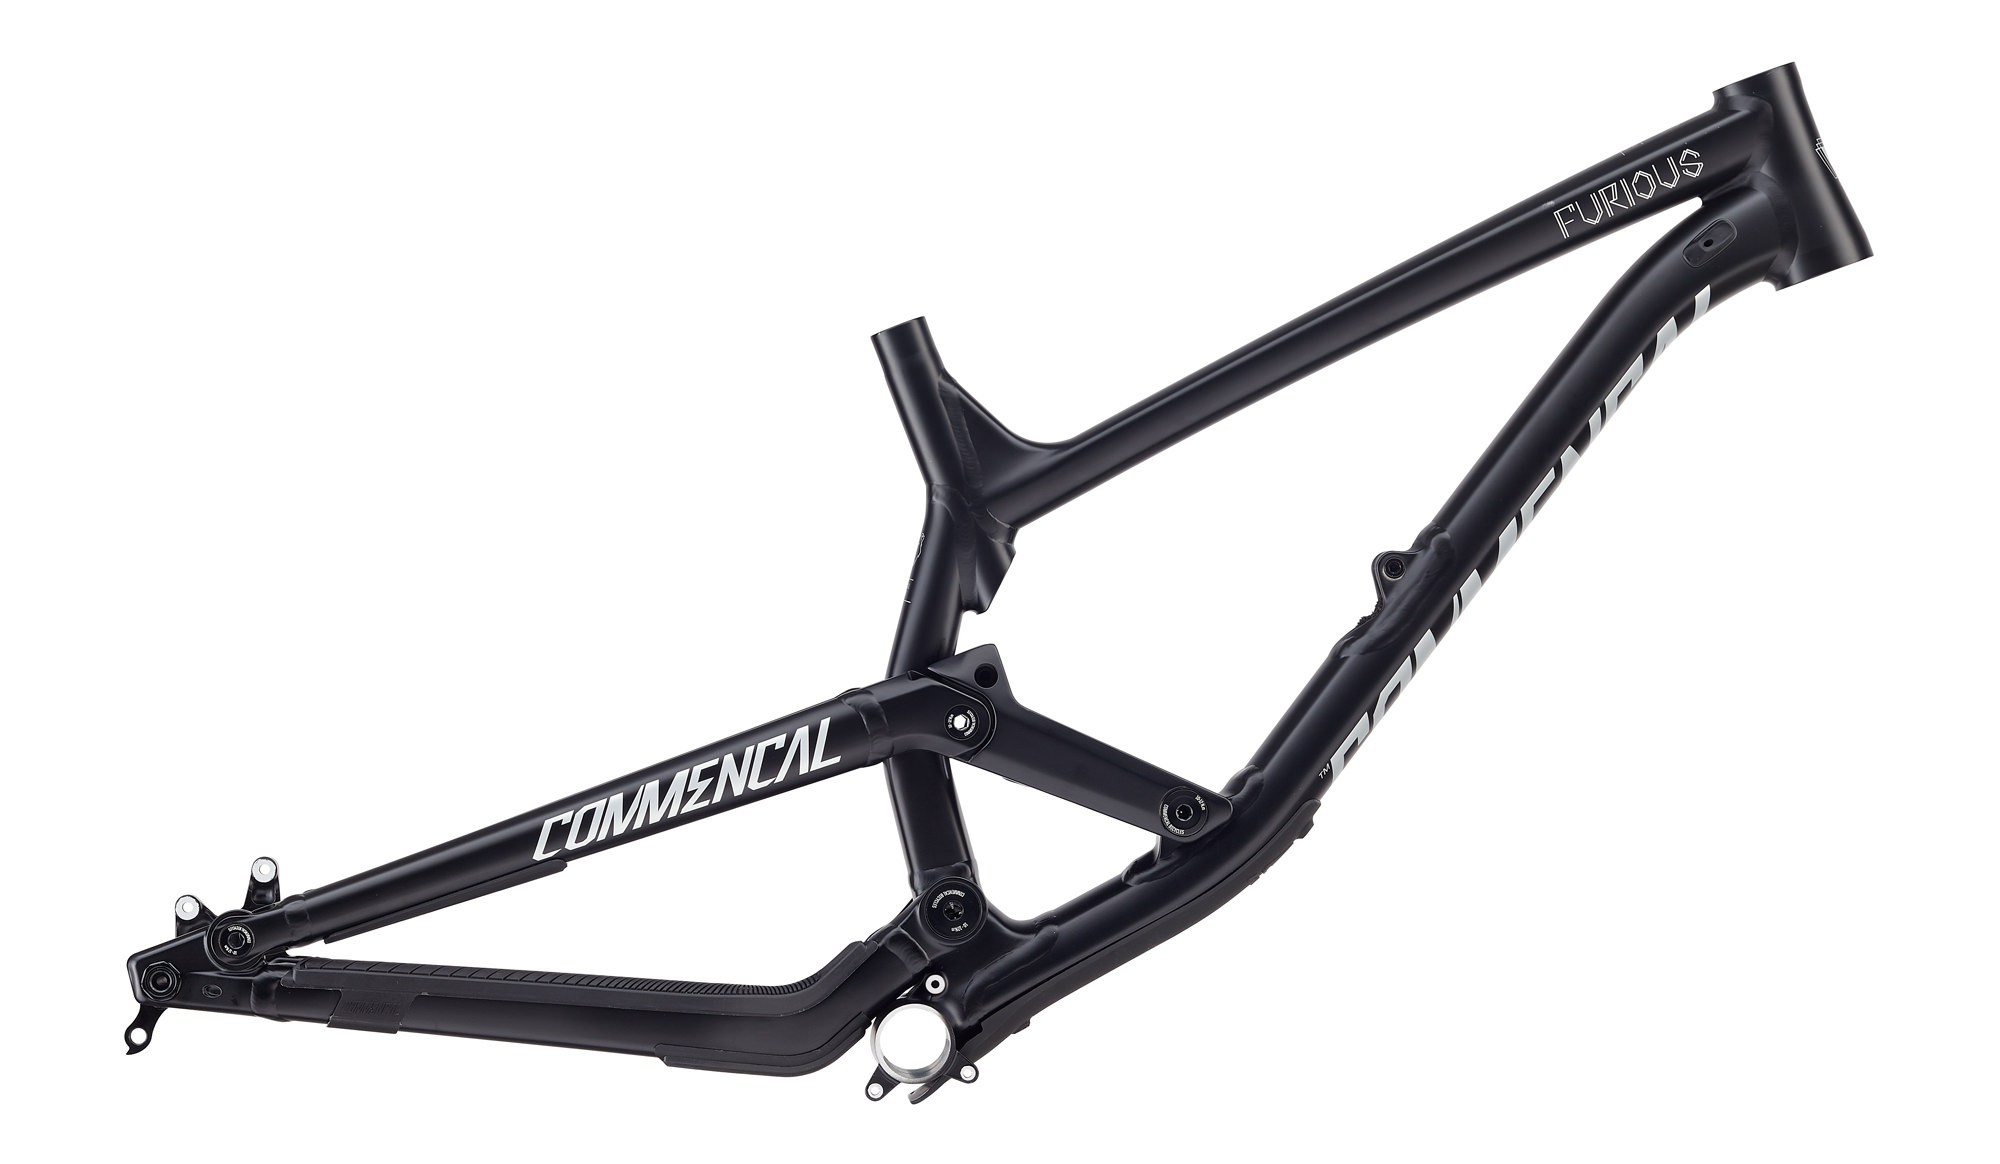 COMMENCAL 2018 | FRAME FURIOUS 650B BLACK 2018